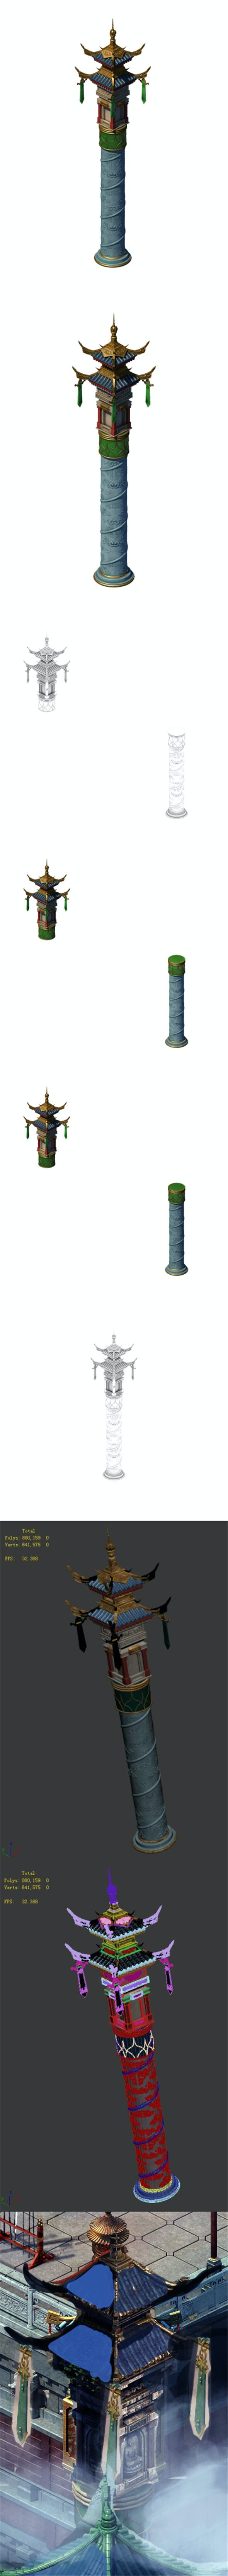 Building - contest ring - decorative column - 3DOcean Item for Sale